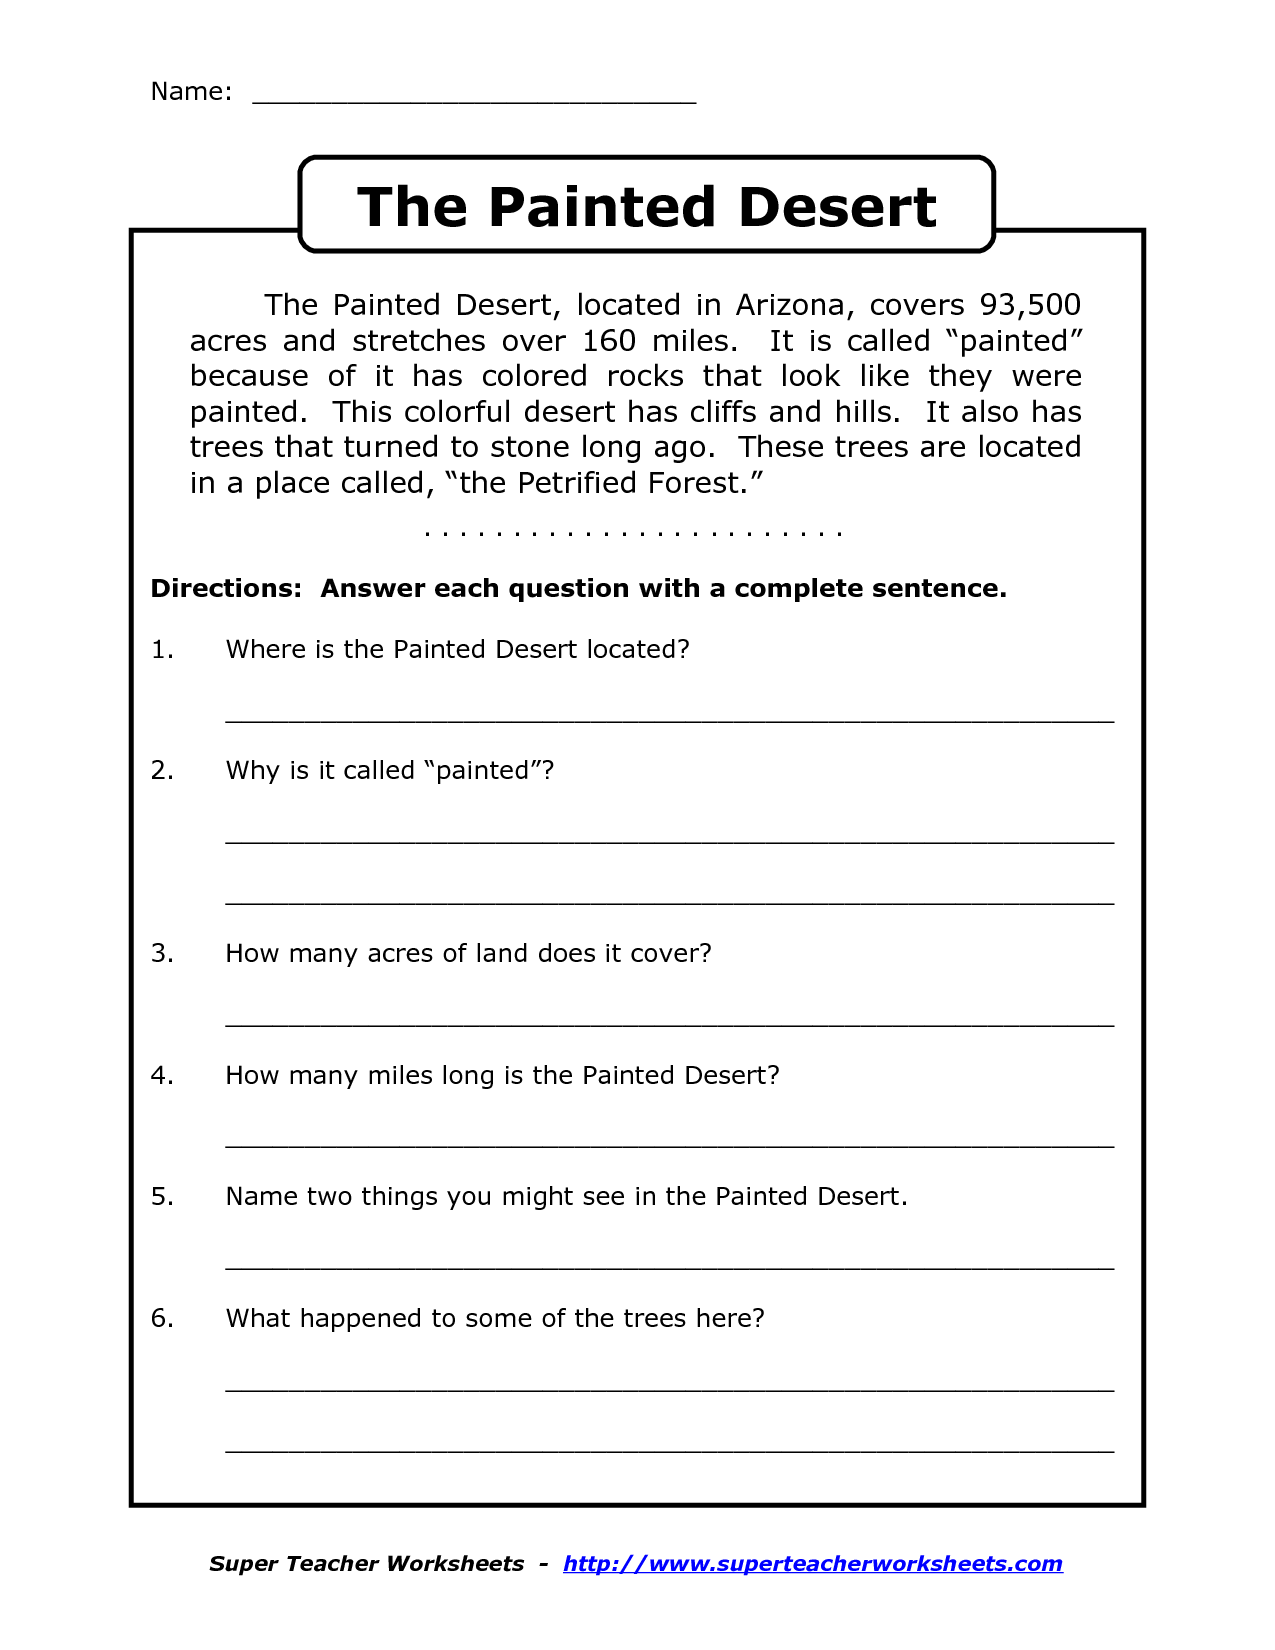 Worksheet Comprehension Check Worksheets 7 best images of reading comprehension worksheets free printable grade 3